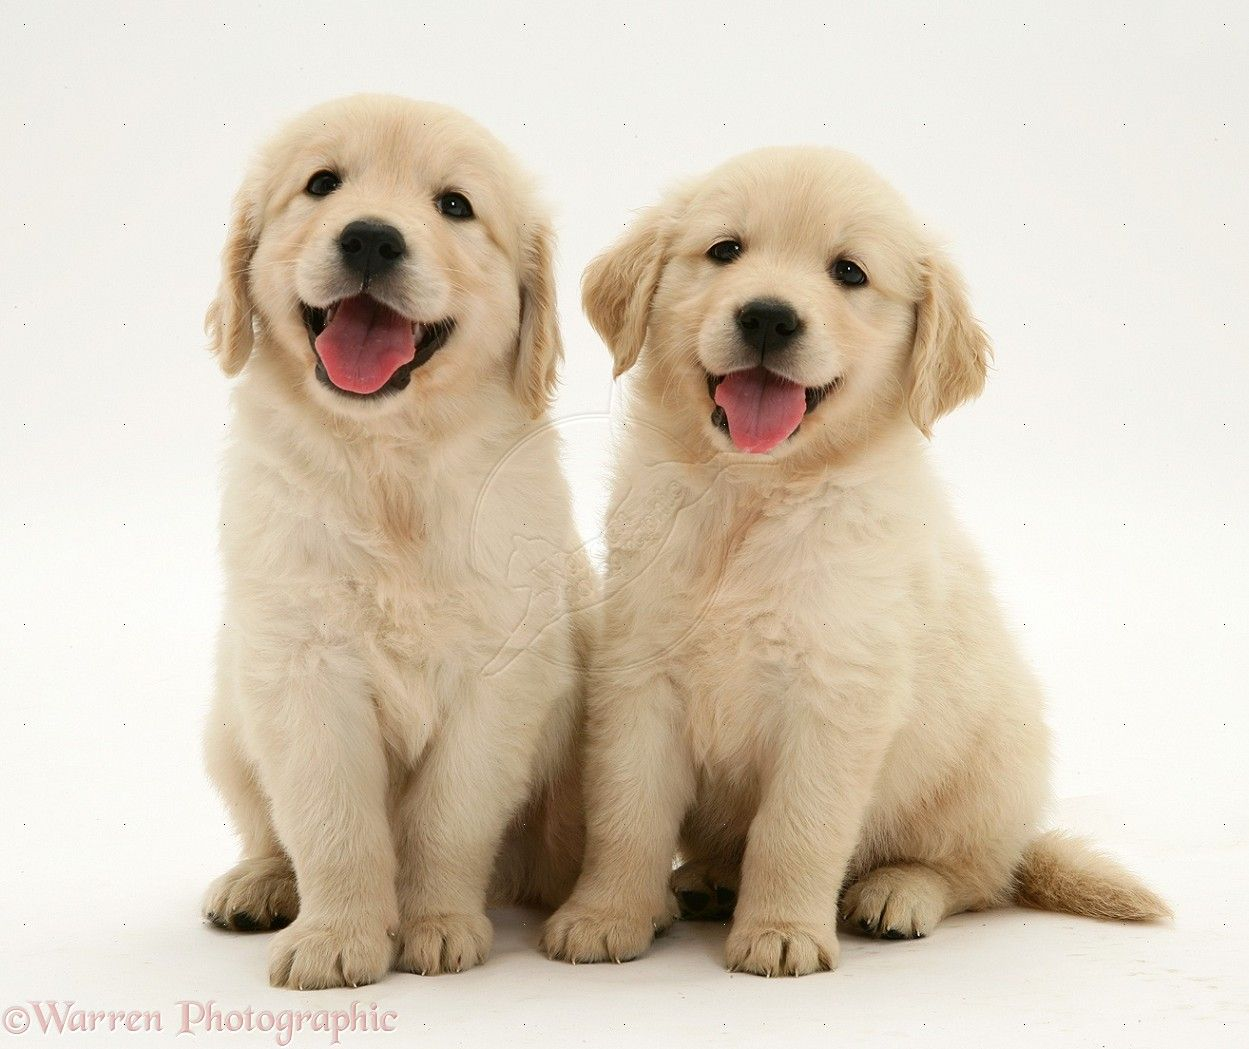 Pin By Clara Hankins On Animals Sooooo Cute Cute Animals Cute Lab Puppies Lab Puppies